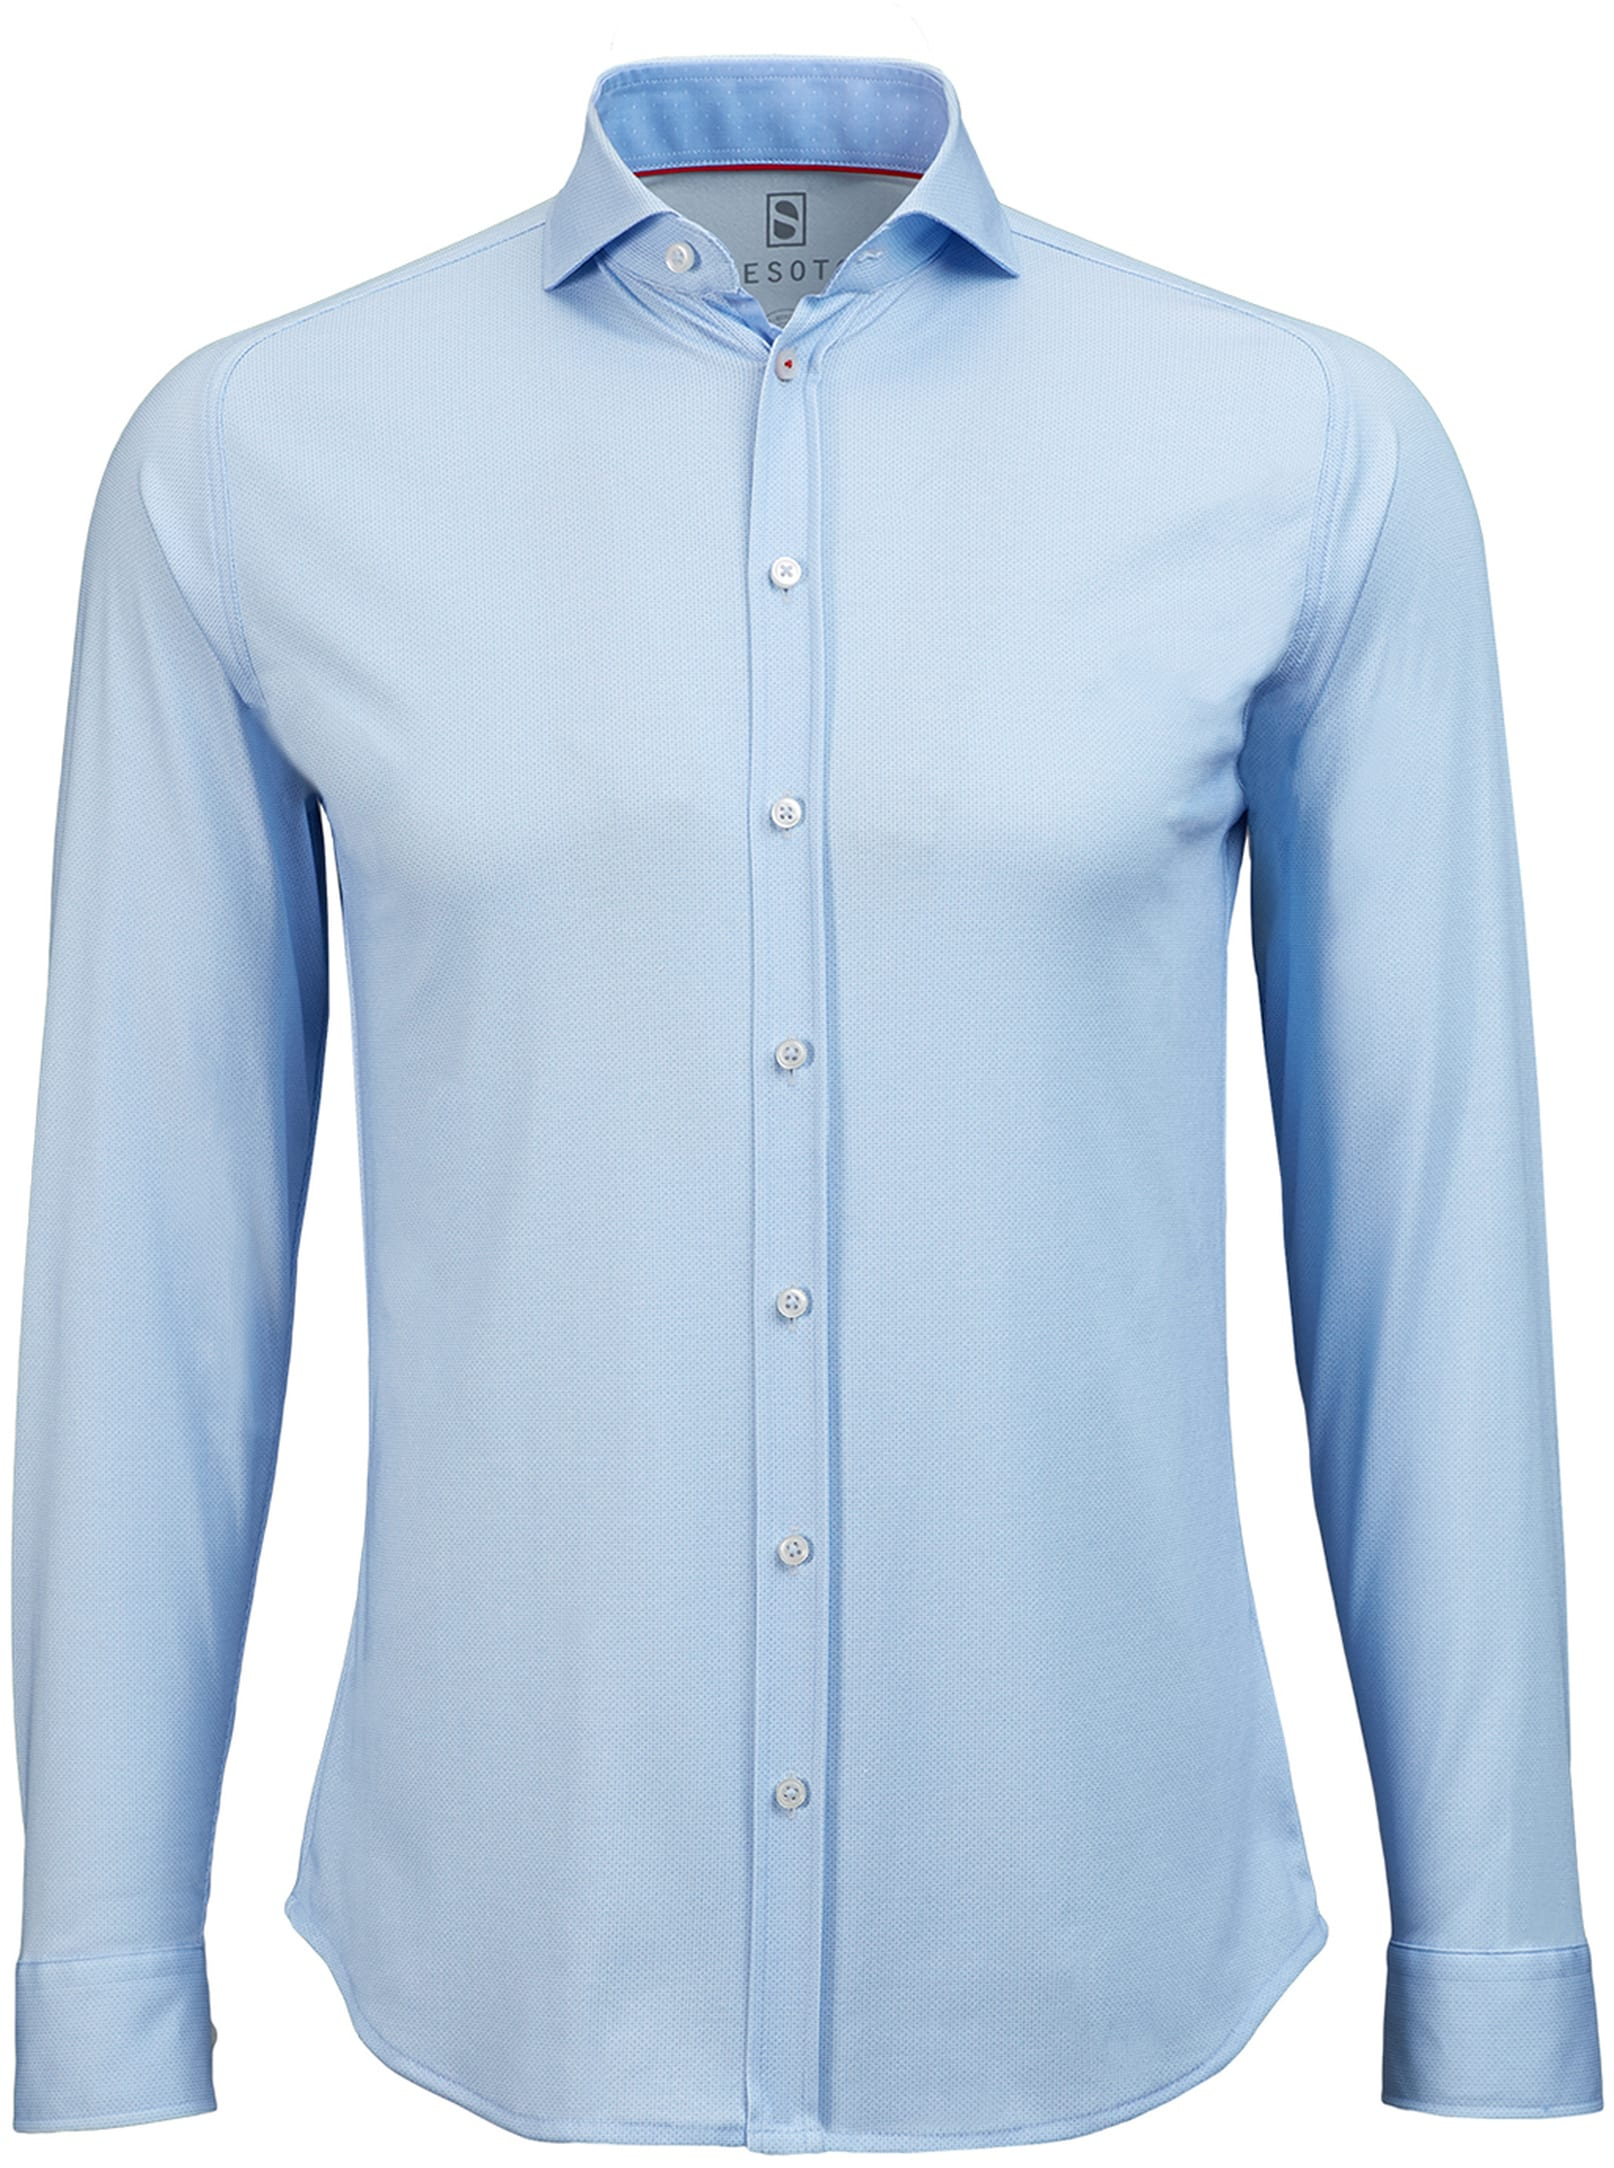 Desoto Shirt Non Iron Blue Oxford